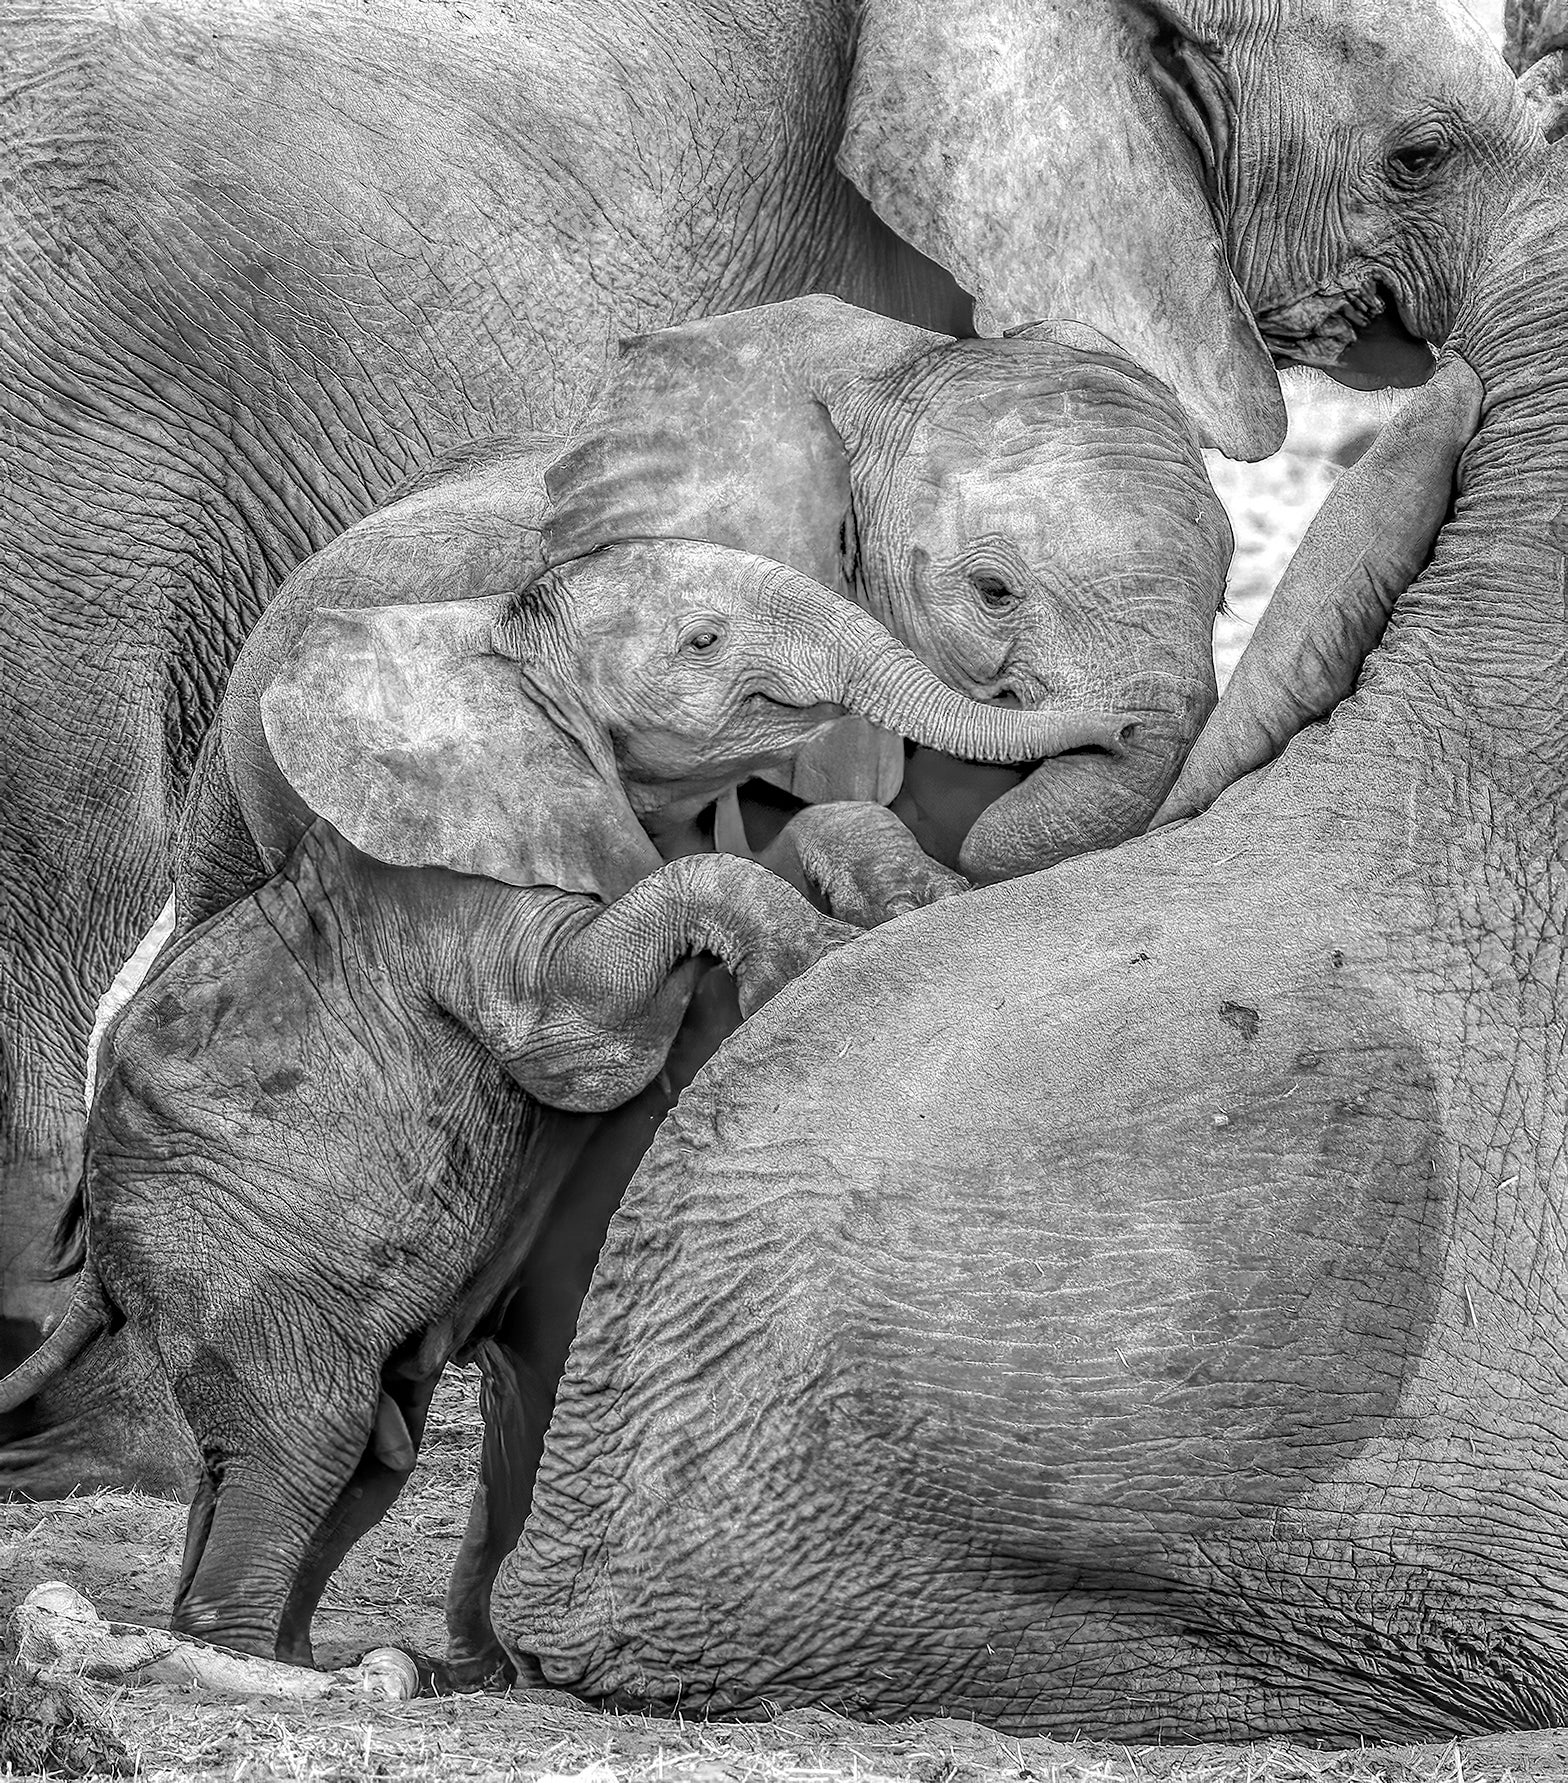 Young elephant piling on top of several family members.